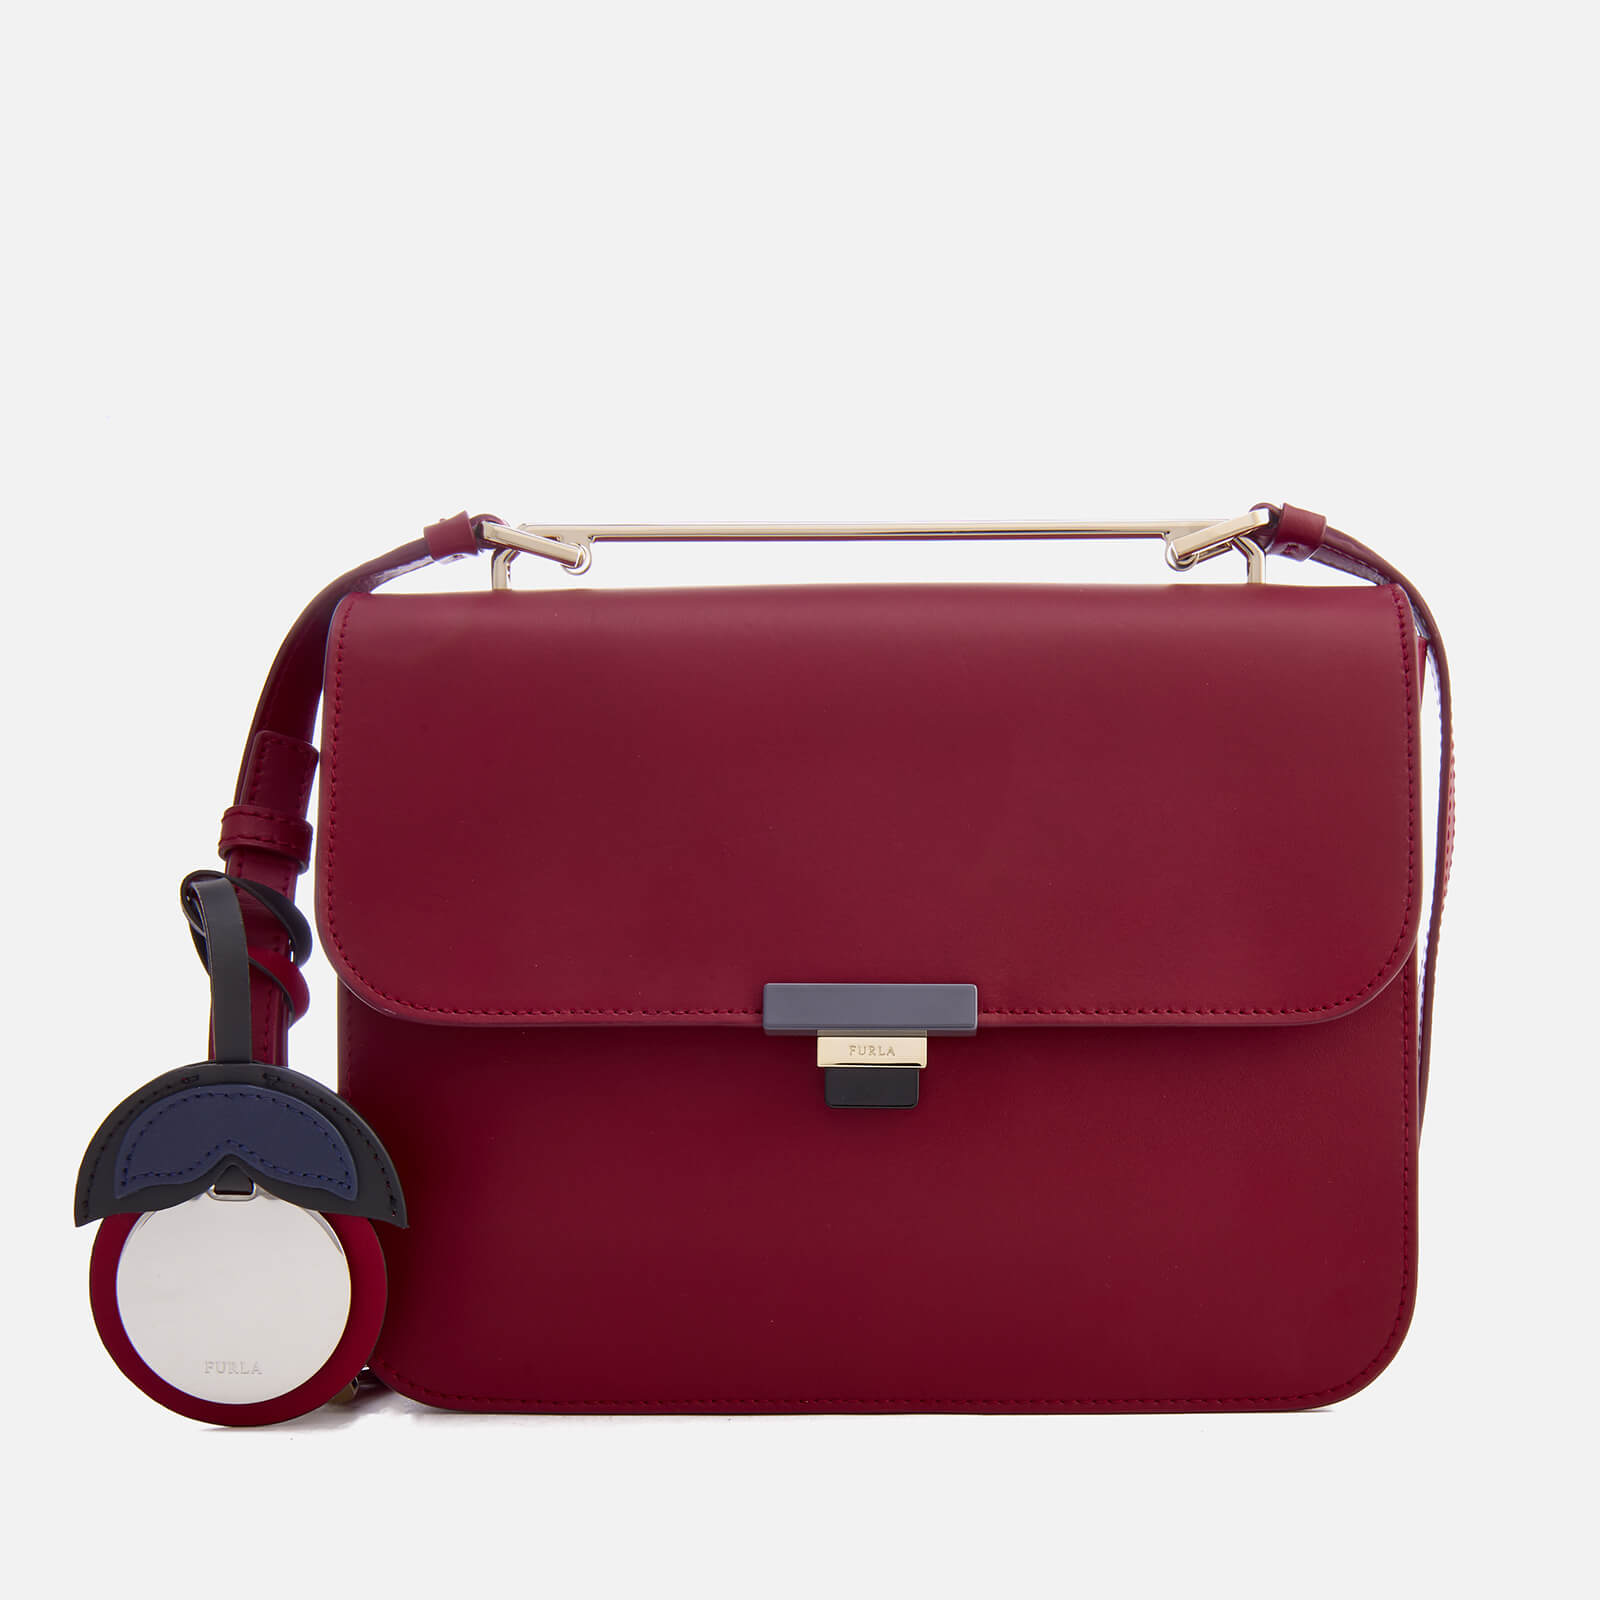 9fe3f267b6 Furla Women s Elisir Small Cross Body Bag - Burgundy - Free UK Delivery  over £50